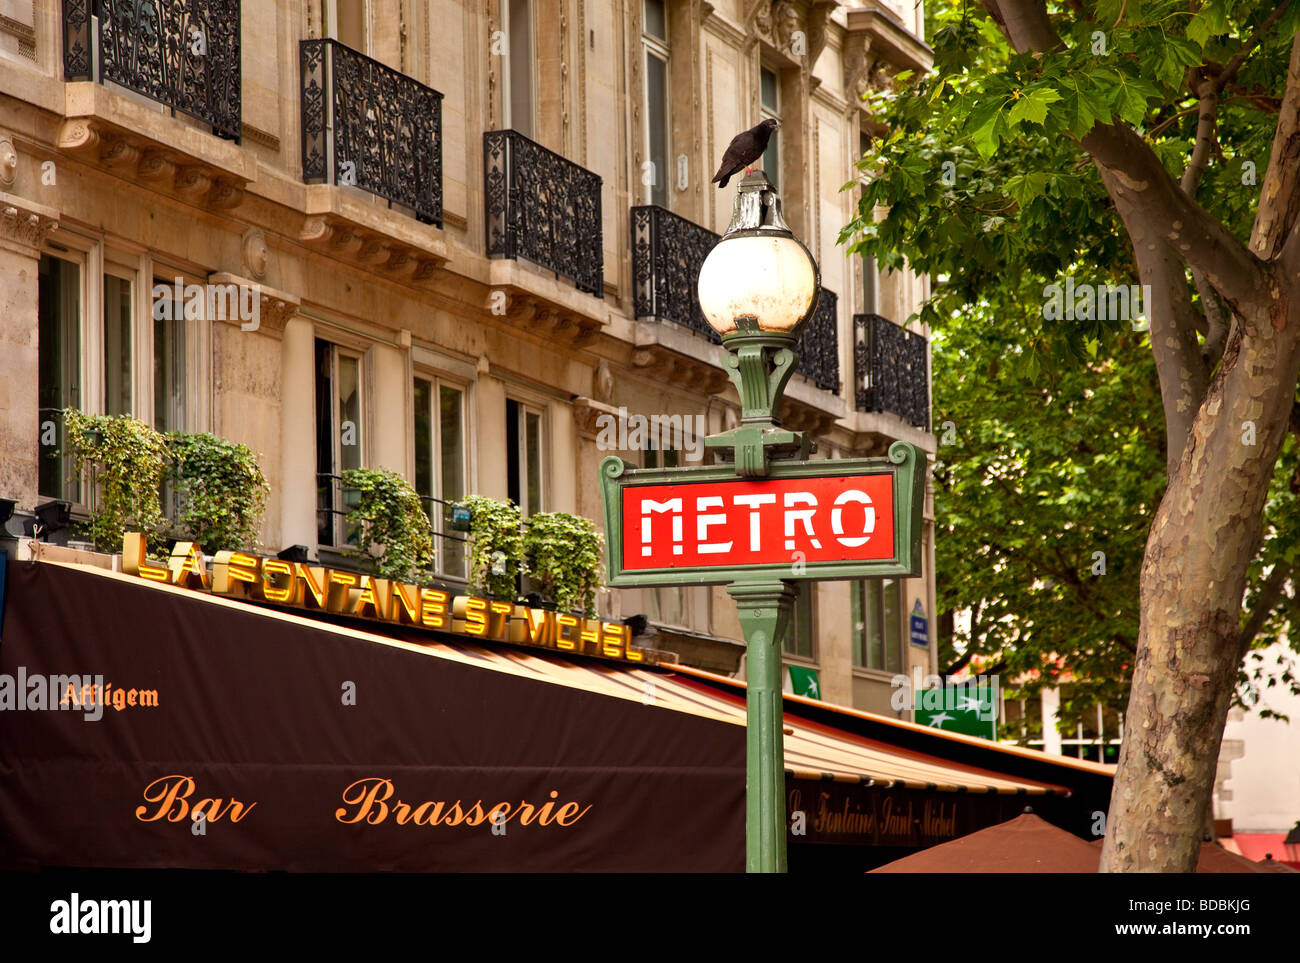 Metro station sign, Paris France - Stock Image